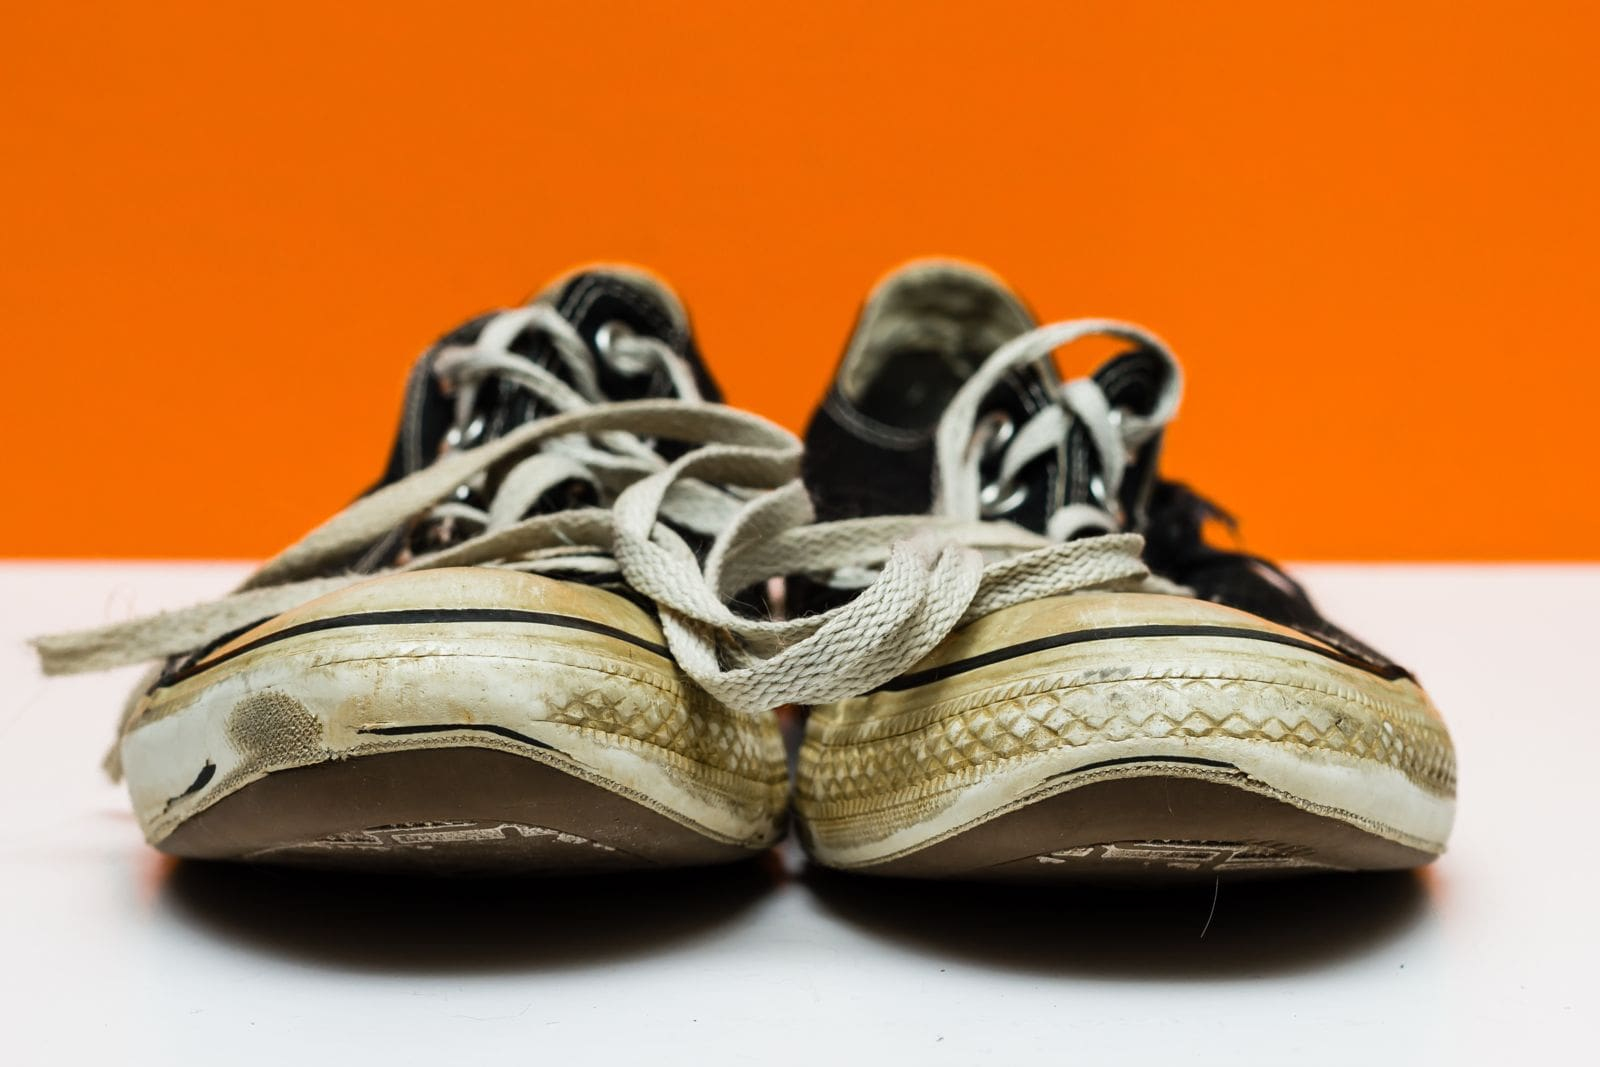 worn out sneakers on orange background